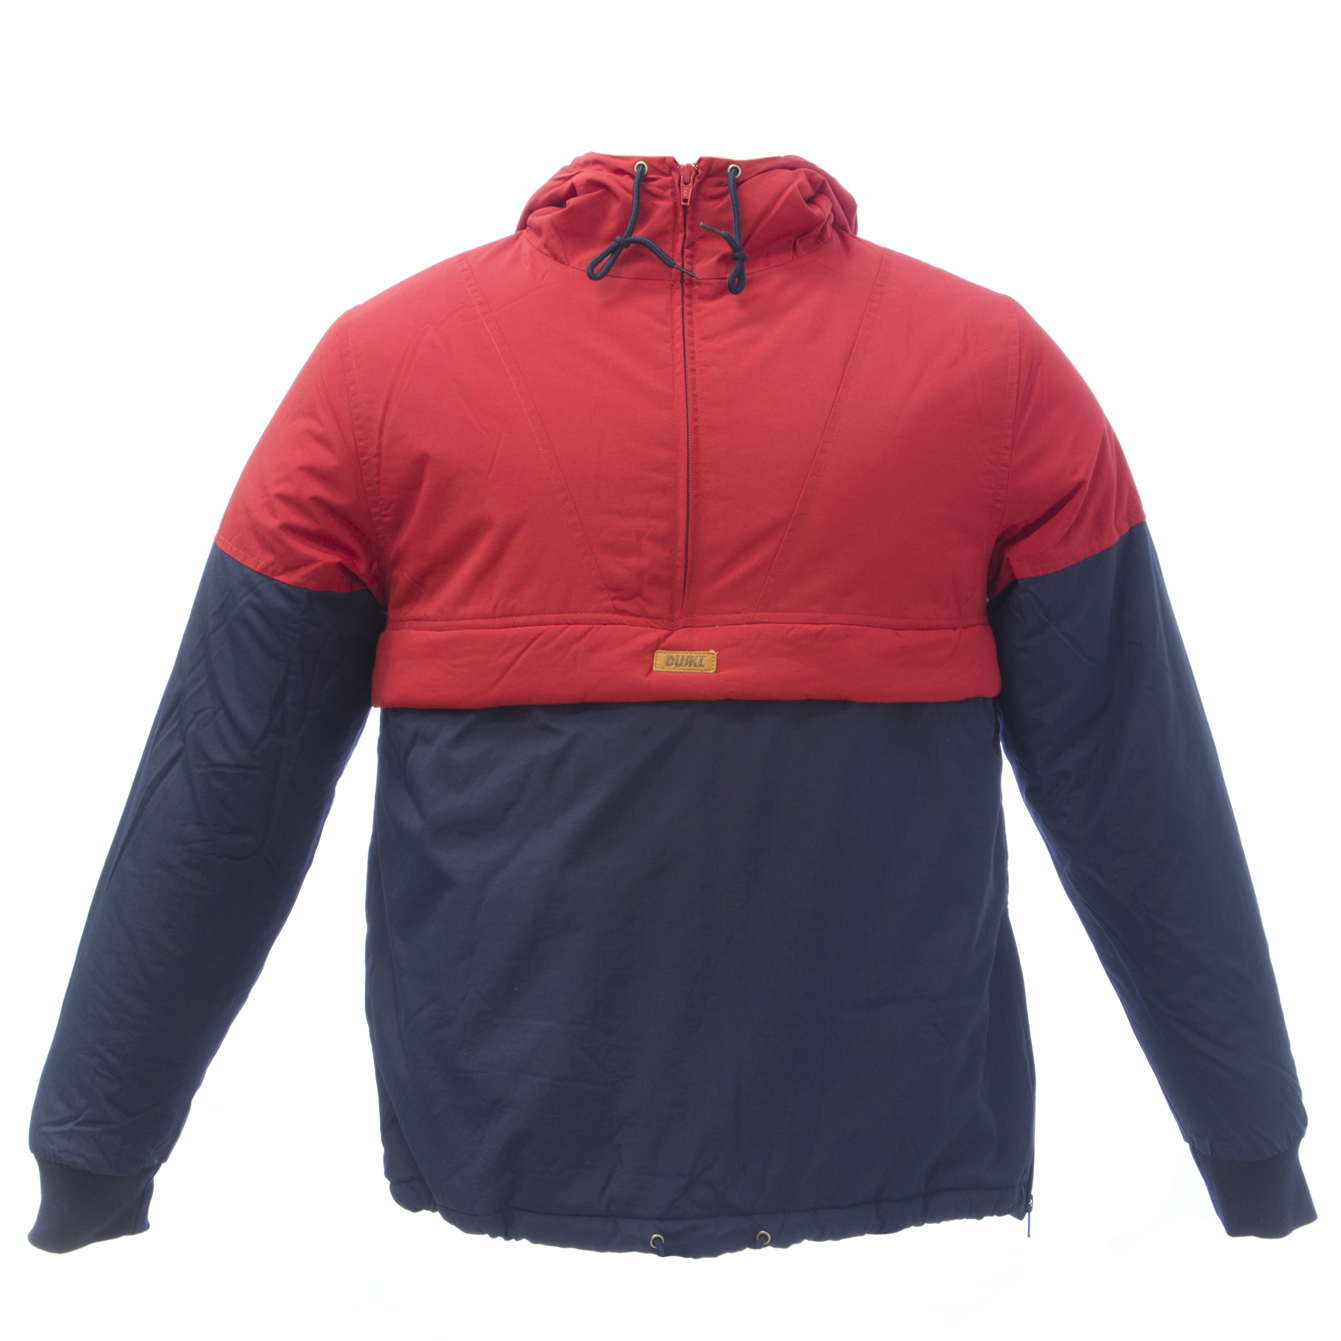 Durkl Men's Half Zip Jacket